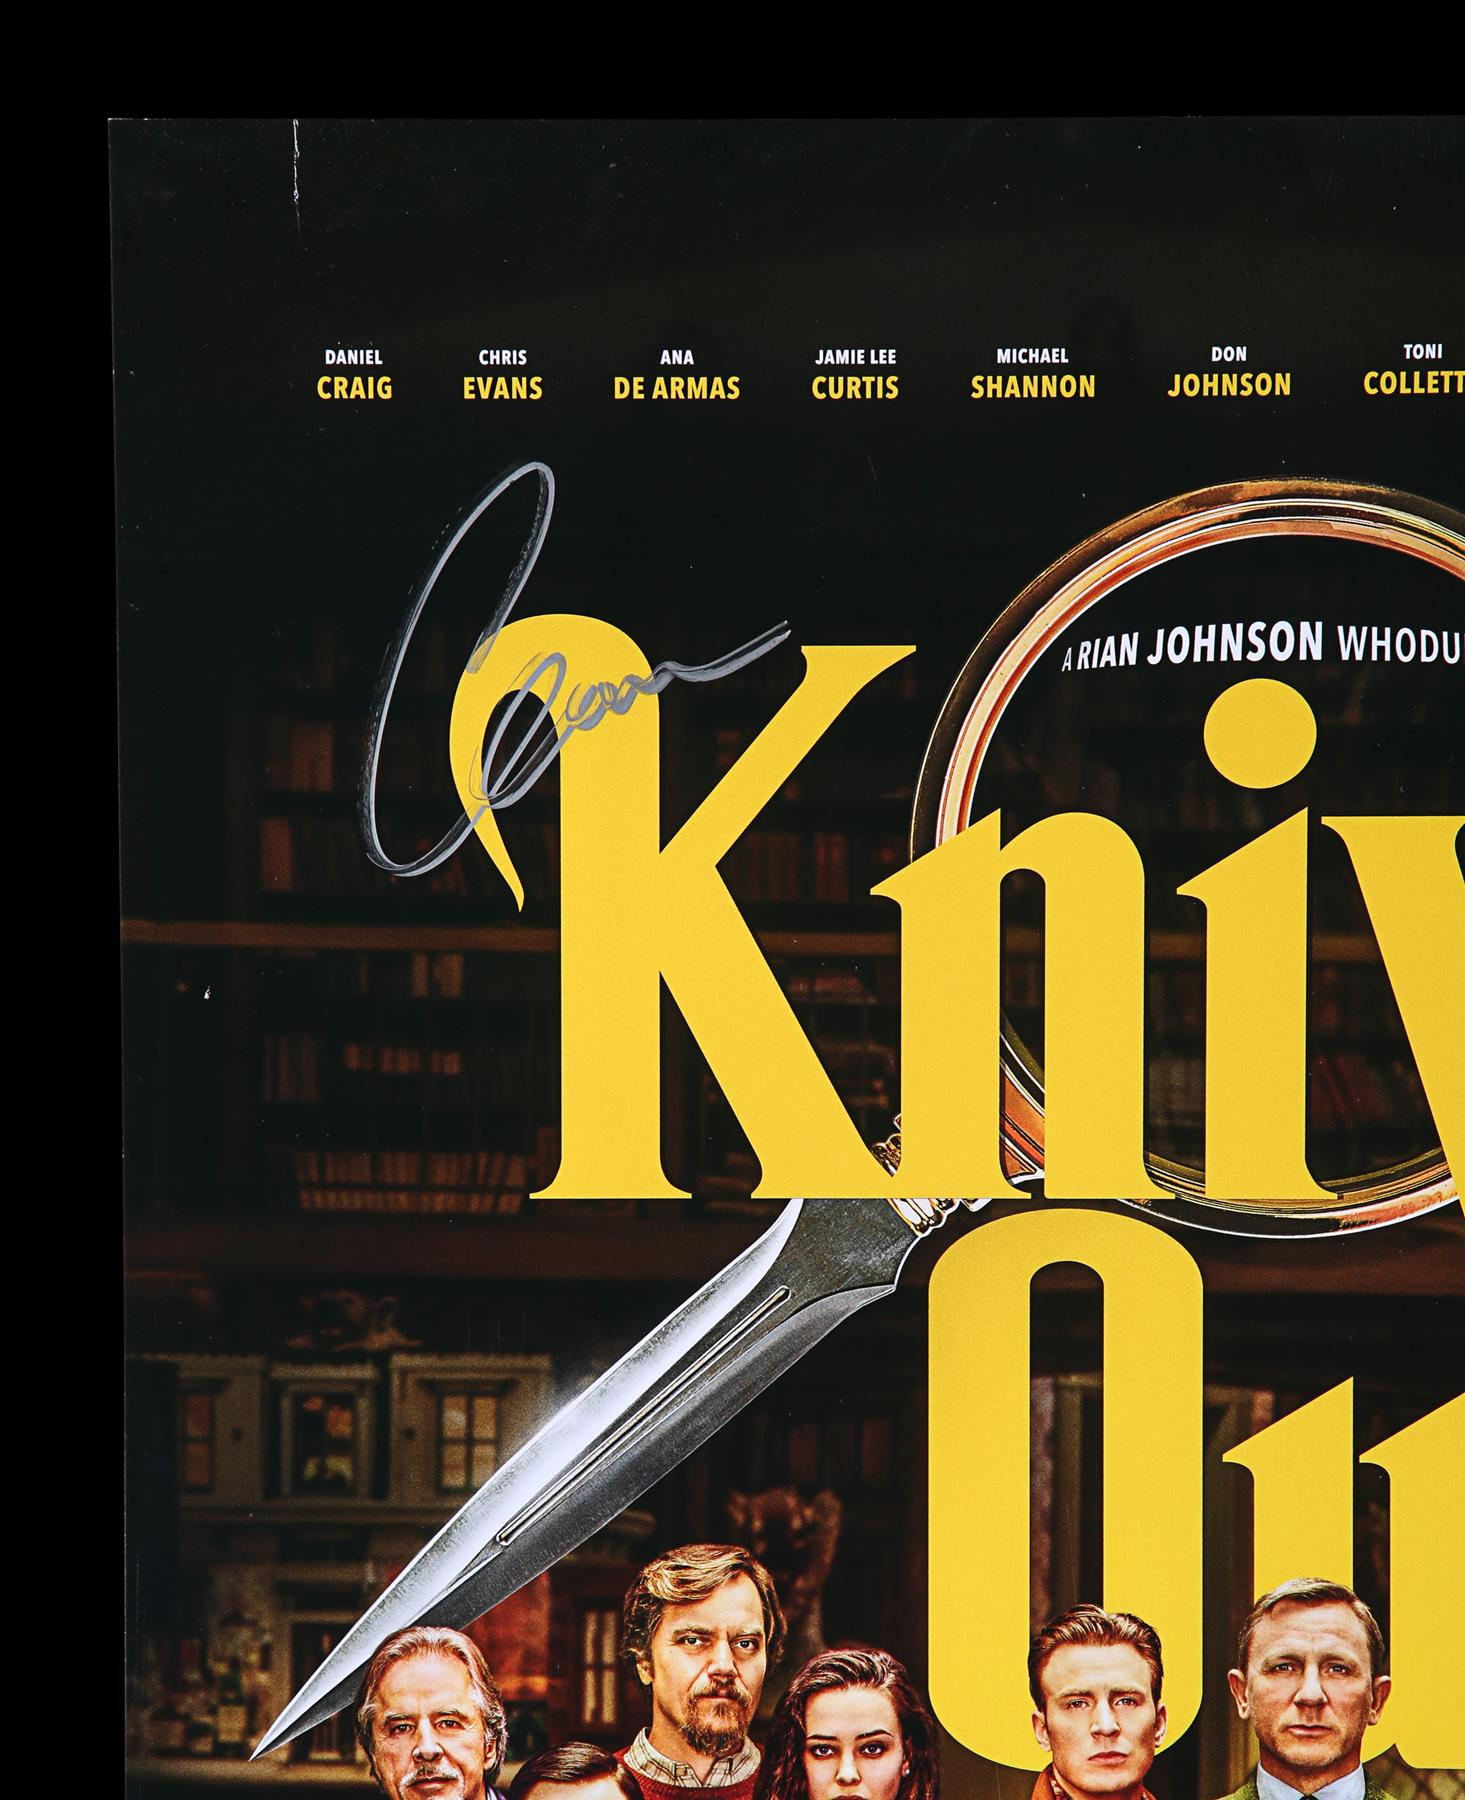 KNIVES OUT (2019) - Poster, 2019, Autographed by Daniel Craig, Chris Evans and Others - Image 2 of 7